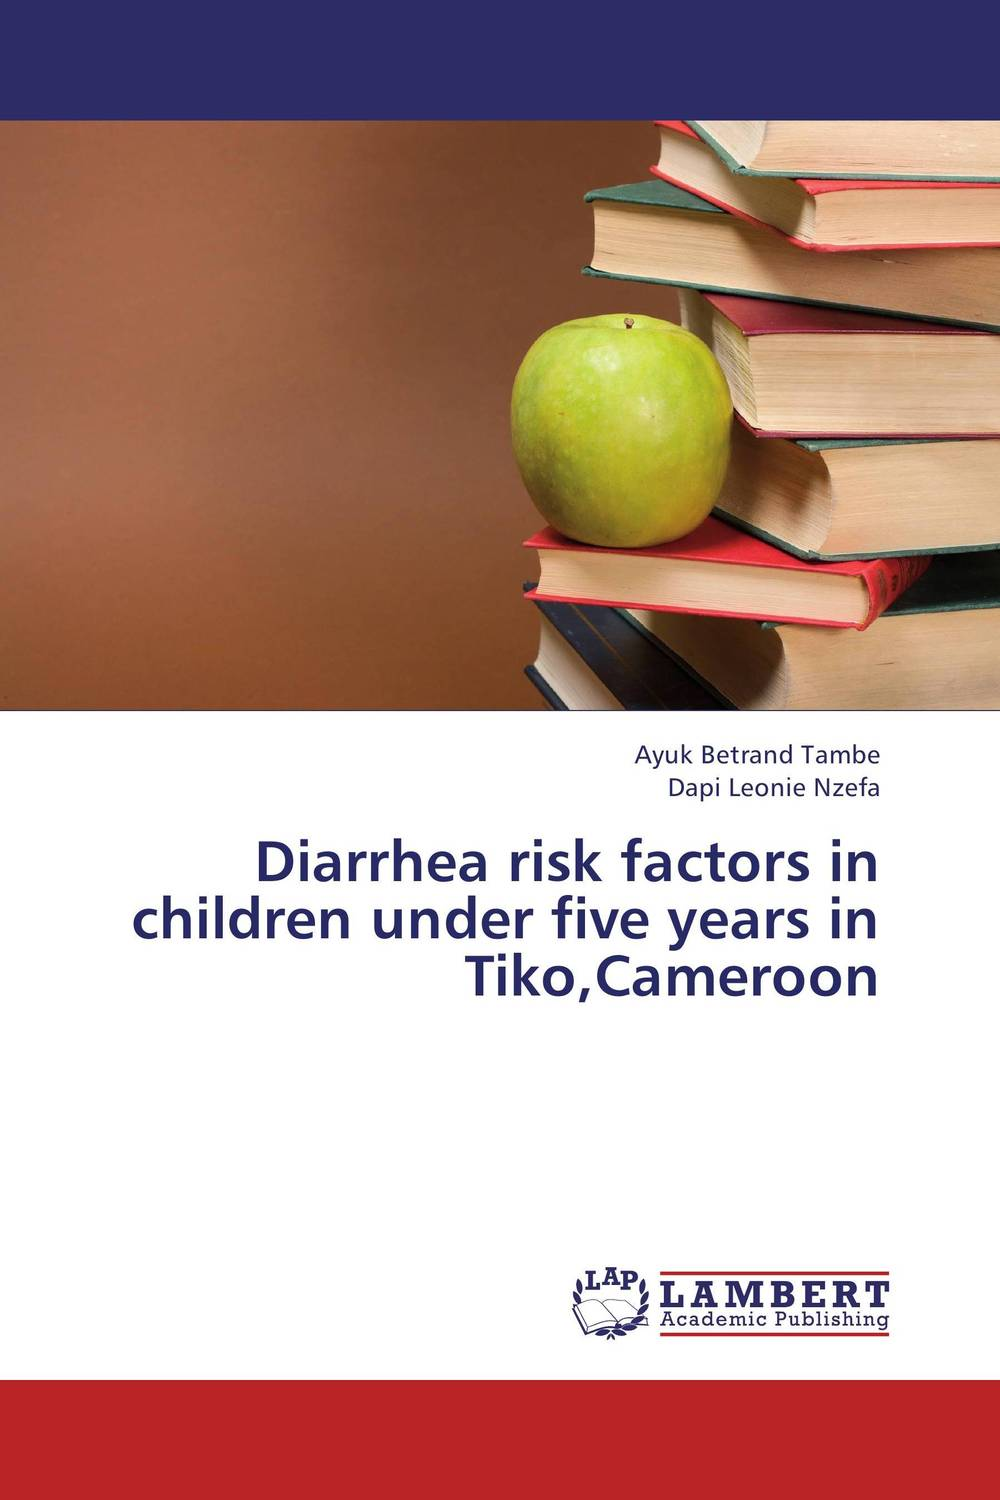 Diarrhea risk factors in children under five years in Tiko,Cameroon arvinder pal singh batra jeewandeep kaur and anil kumar pandey factors associated with breast cancer in amritsar region